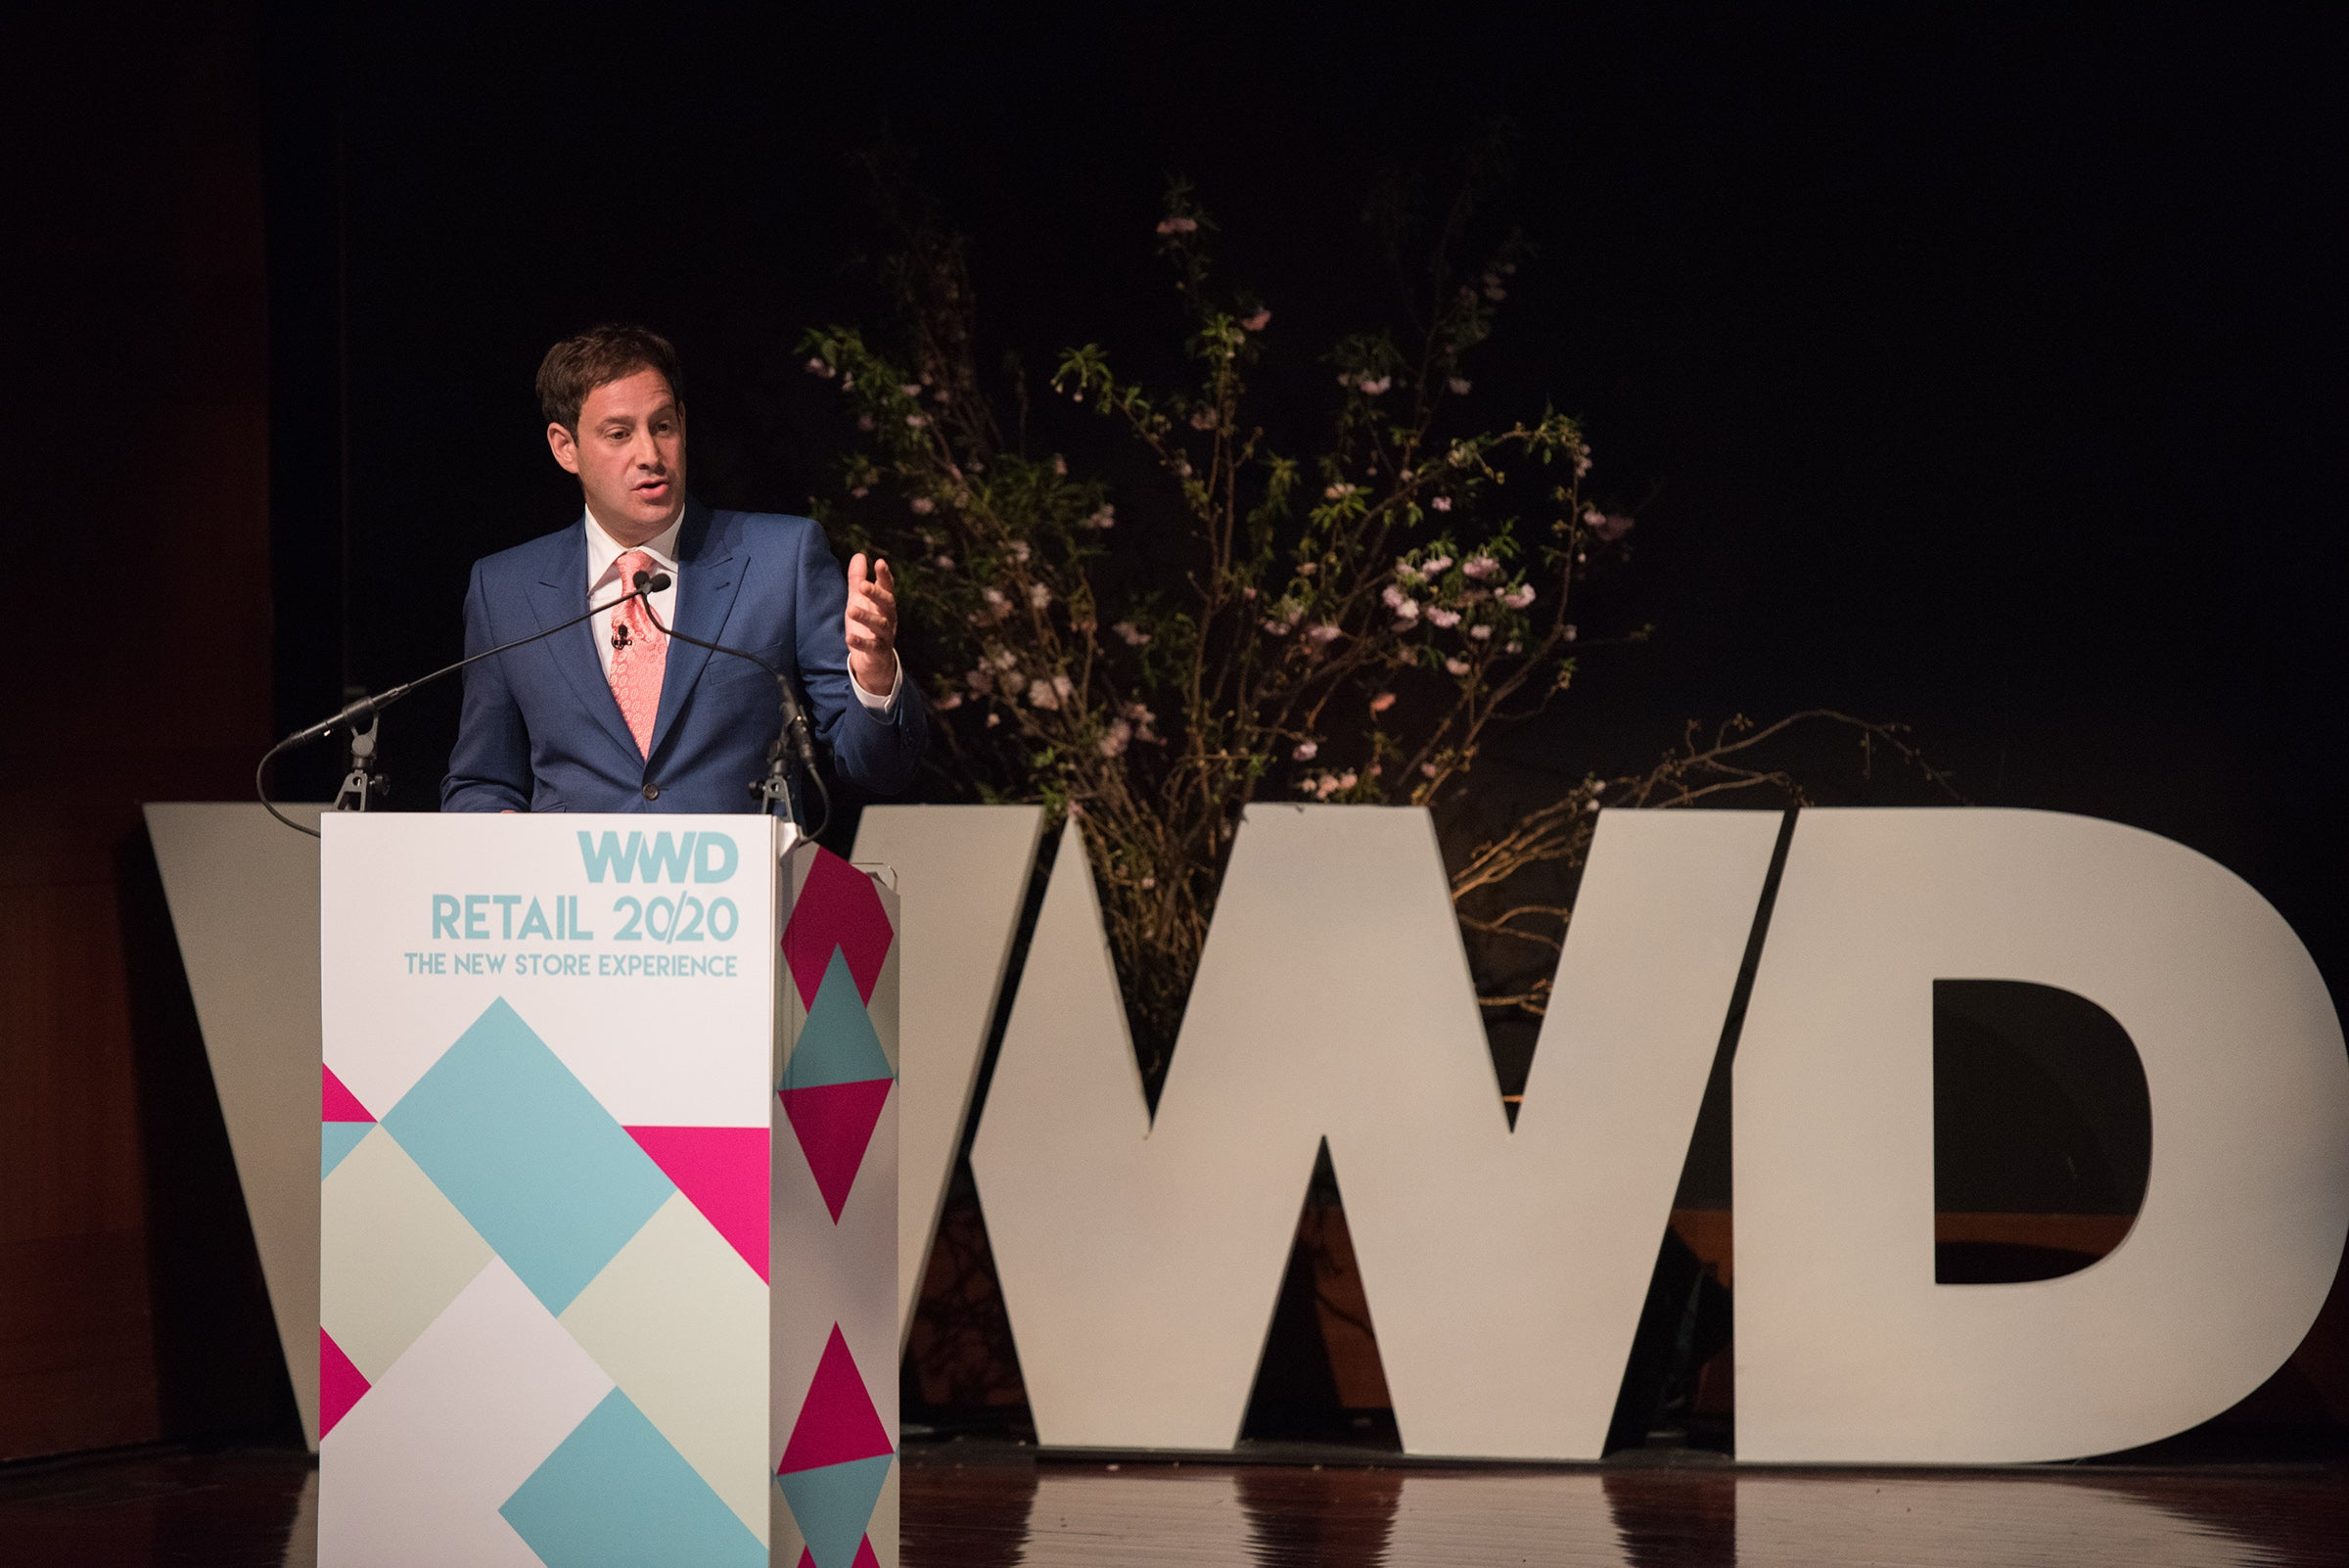 Barry Beck, Bluemercury Chief Operating Officer, speaks on the future of retail at the 2016 WWD Retail 20/20 Summit.